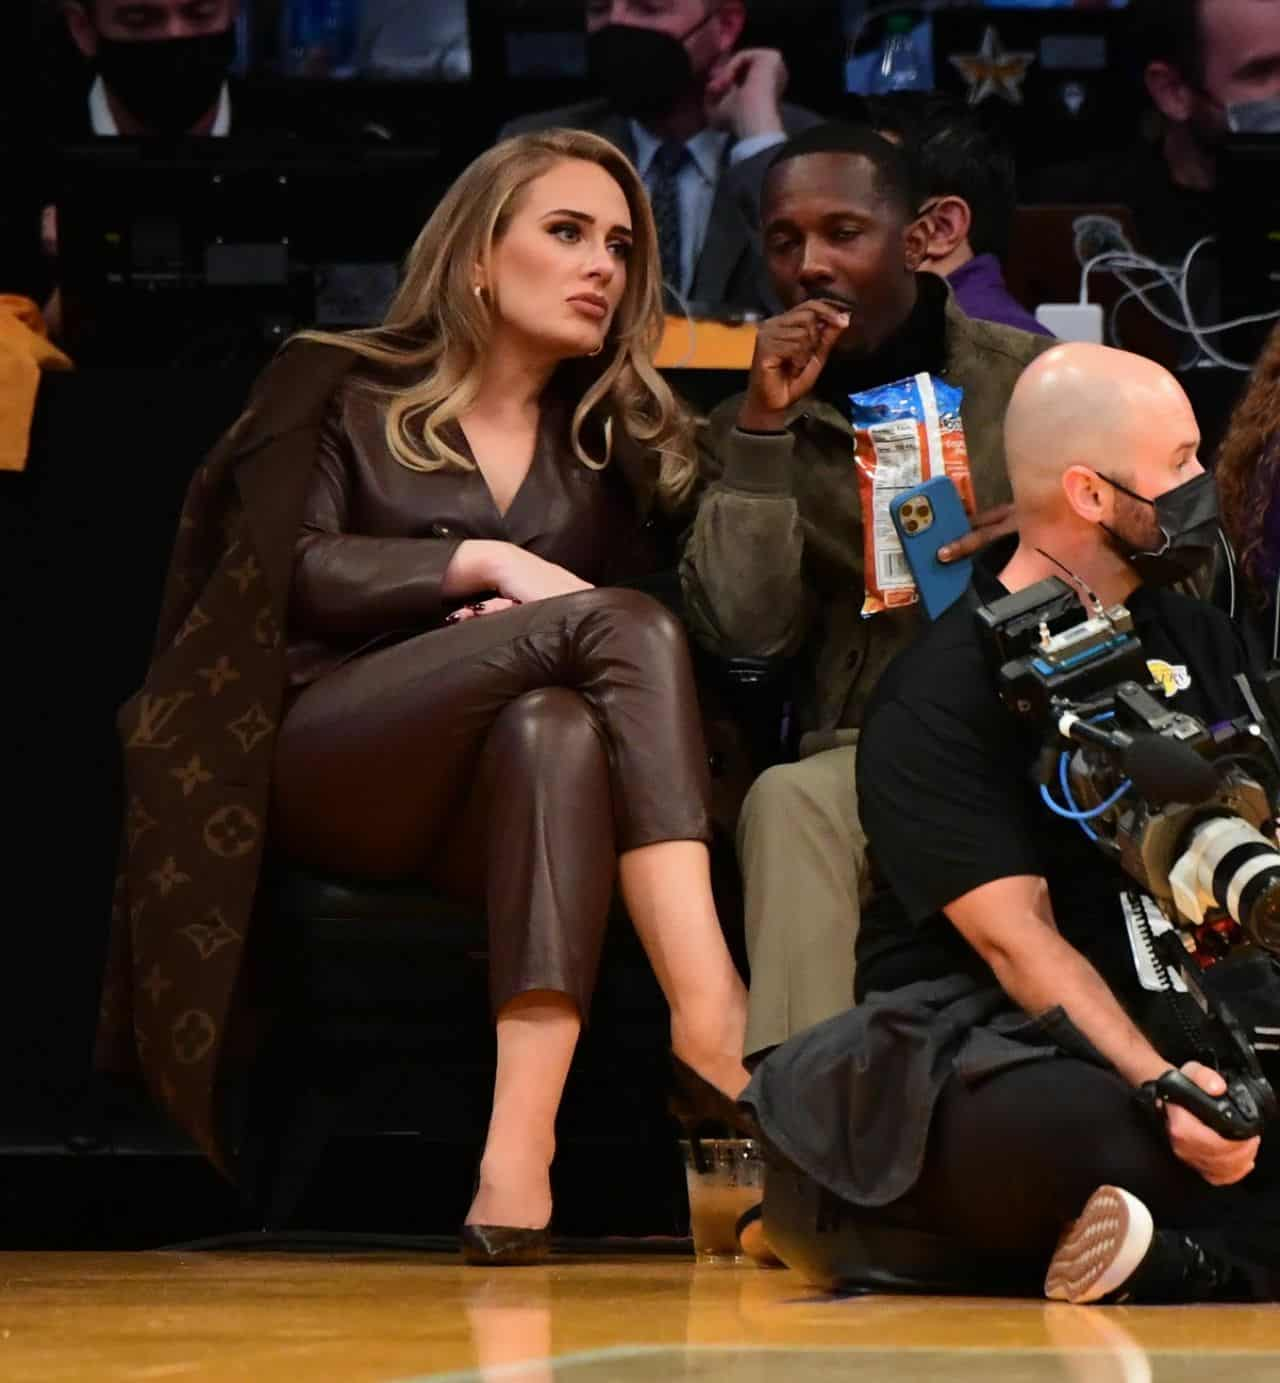 Adele in a Skin-tight Leather Outfit Beside her Boyfriend at an NBA Game